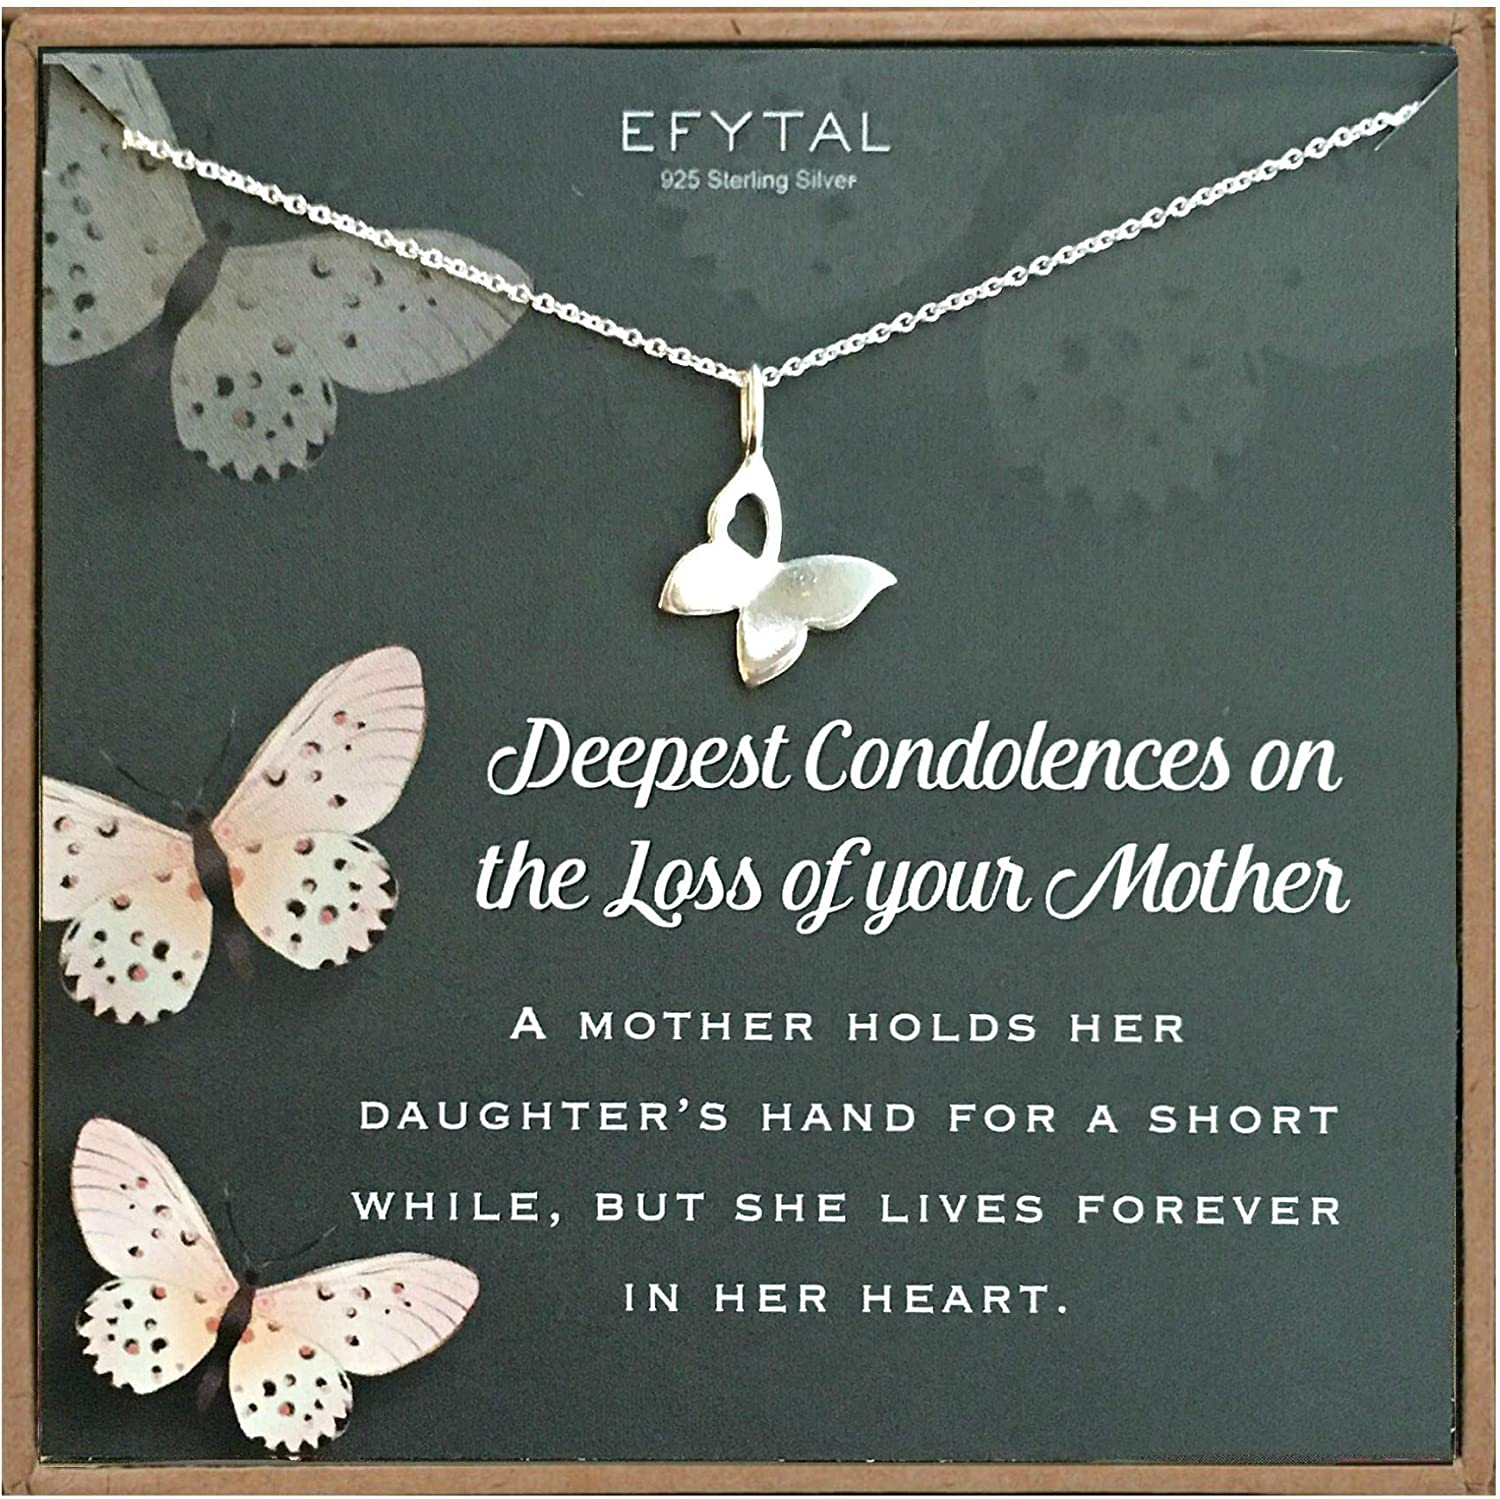 EFYTAL Condolence Gifts 925 Necklace Butterfly Rare Sterling Philadelphia Mall Silver